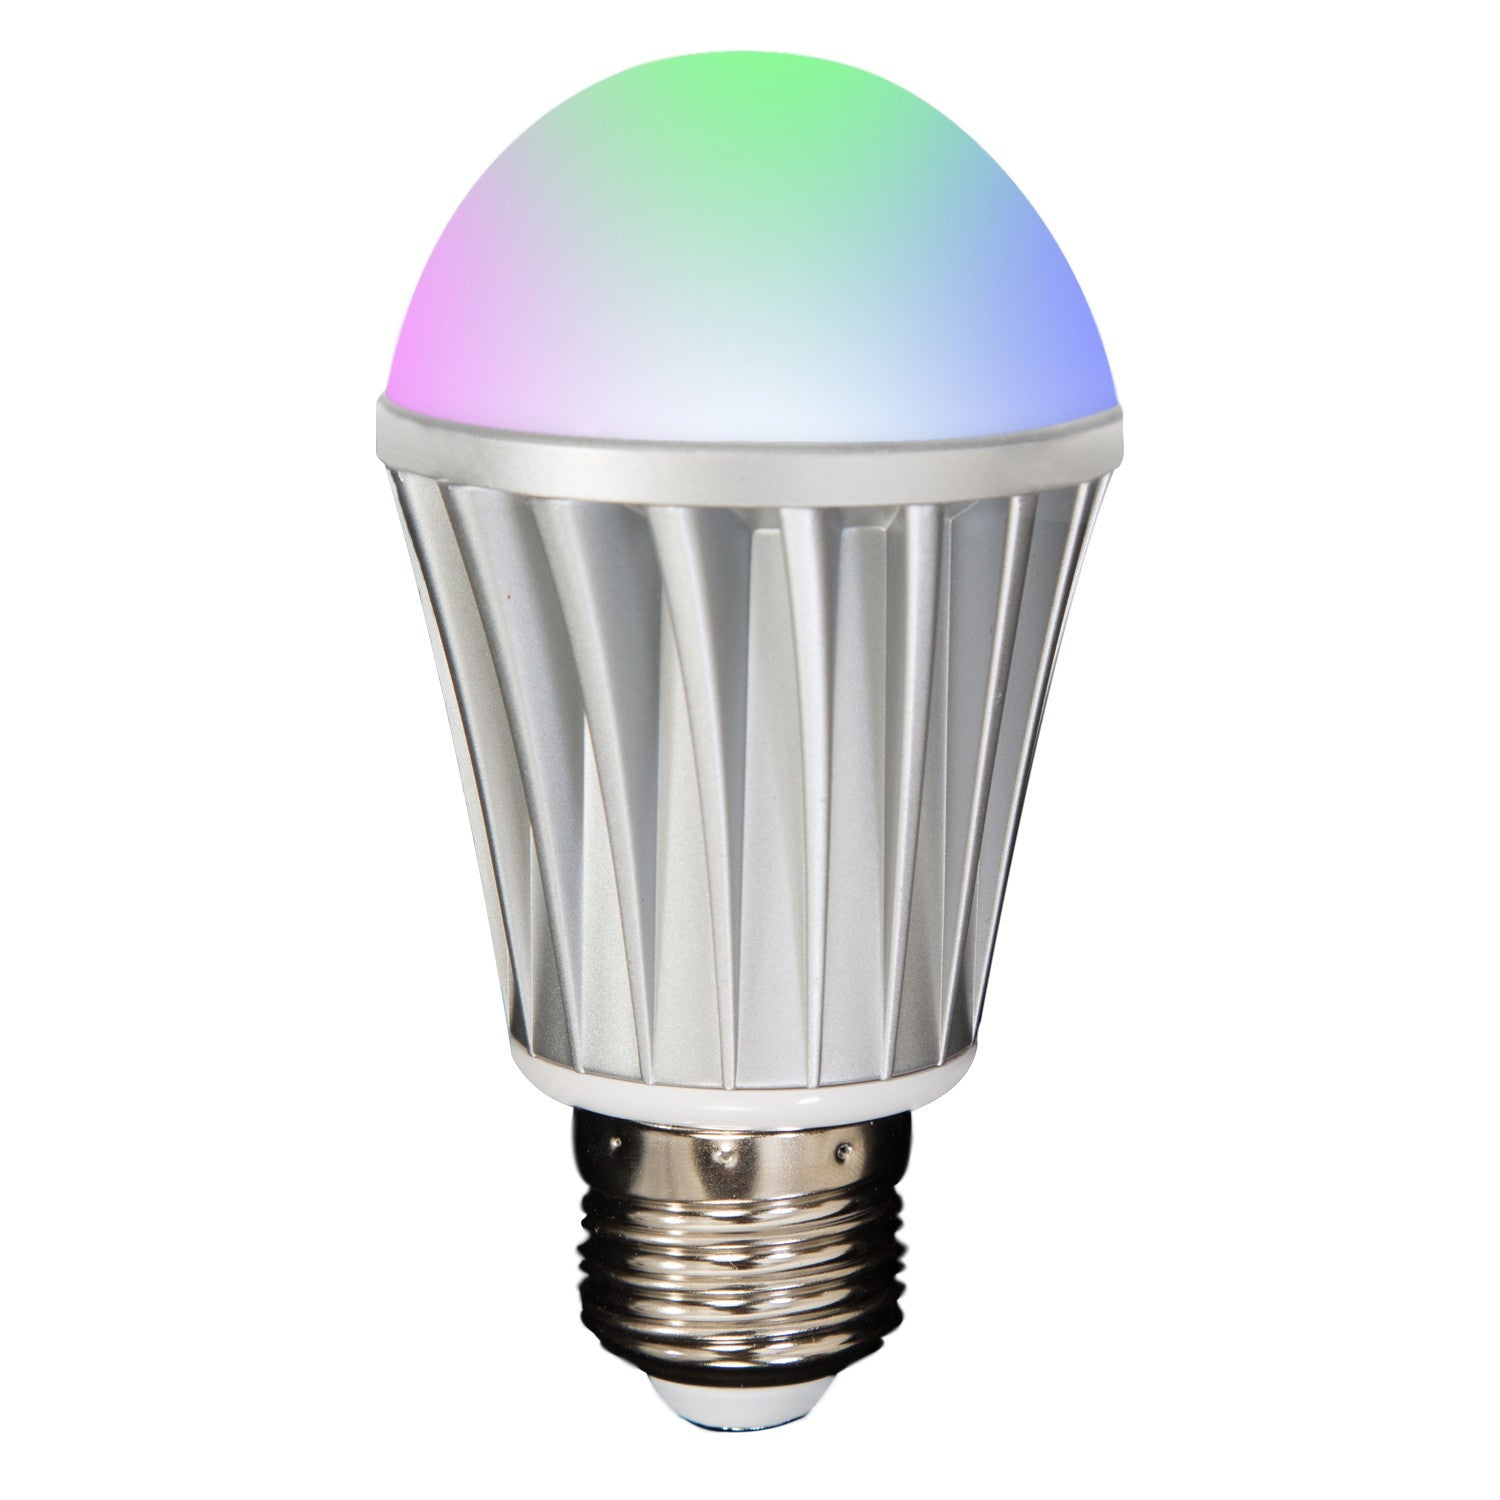 light htg its it reviews your future if are lighting led bulb not offline smart bulbs the s wemo img